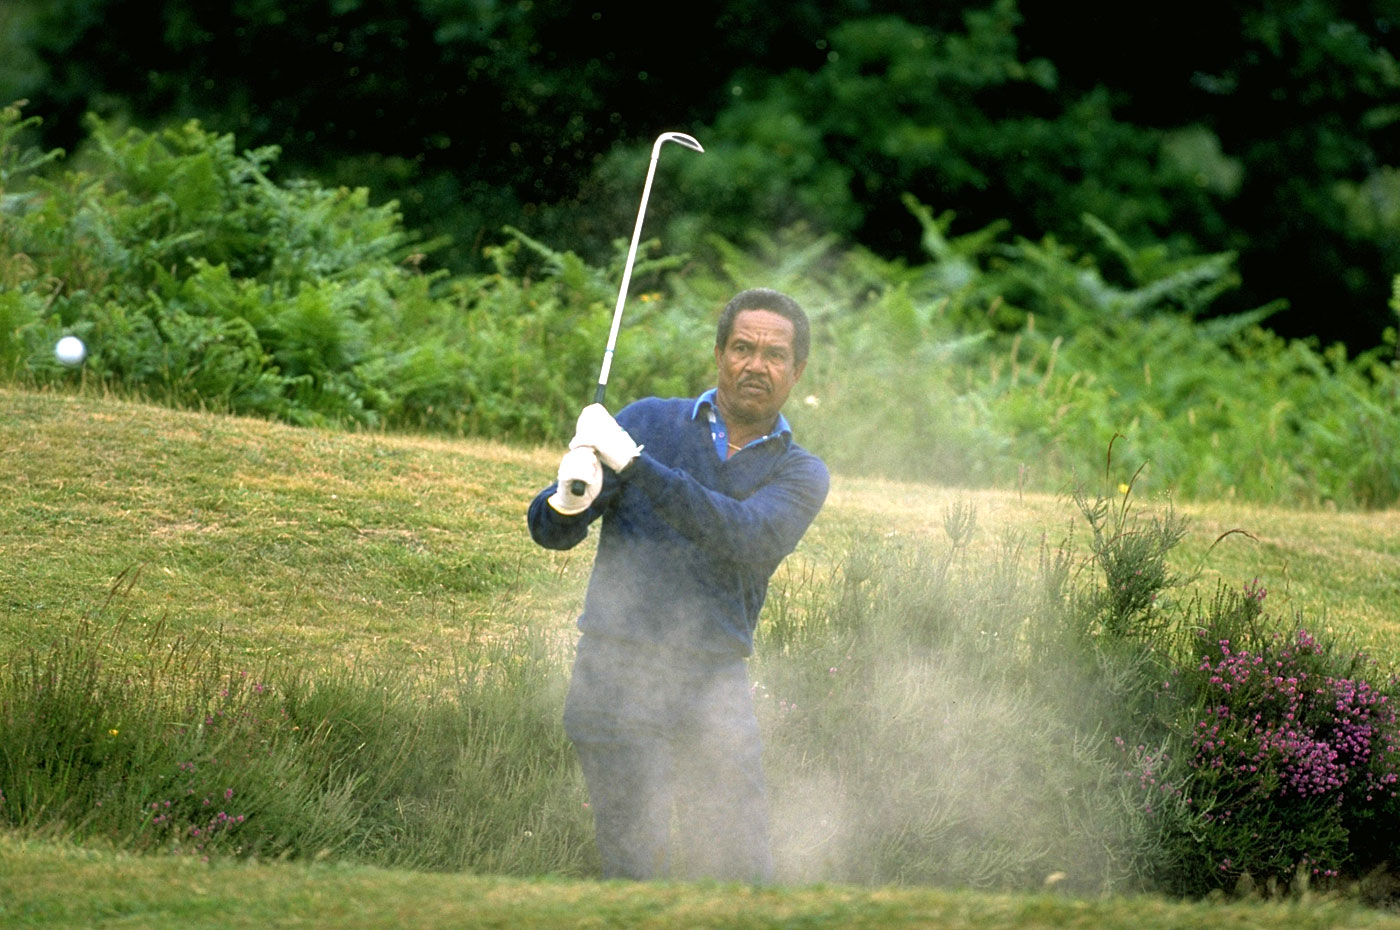 Garry Sobers plays golf